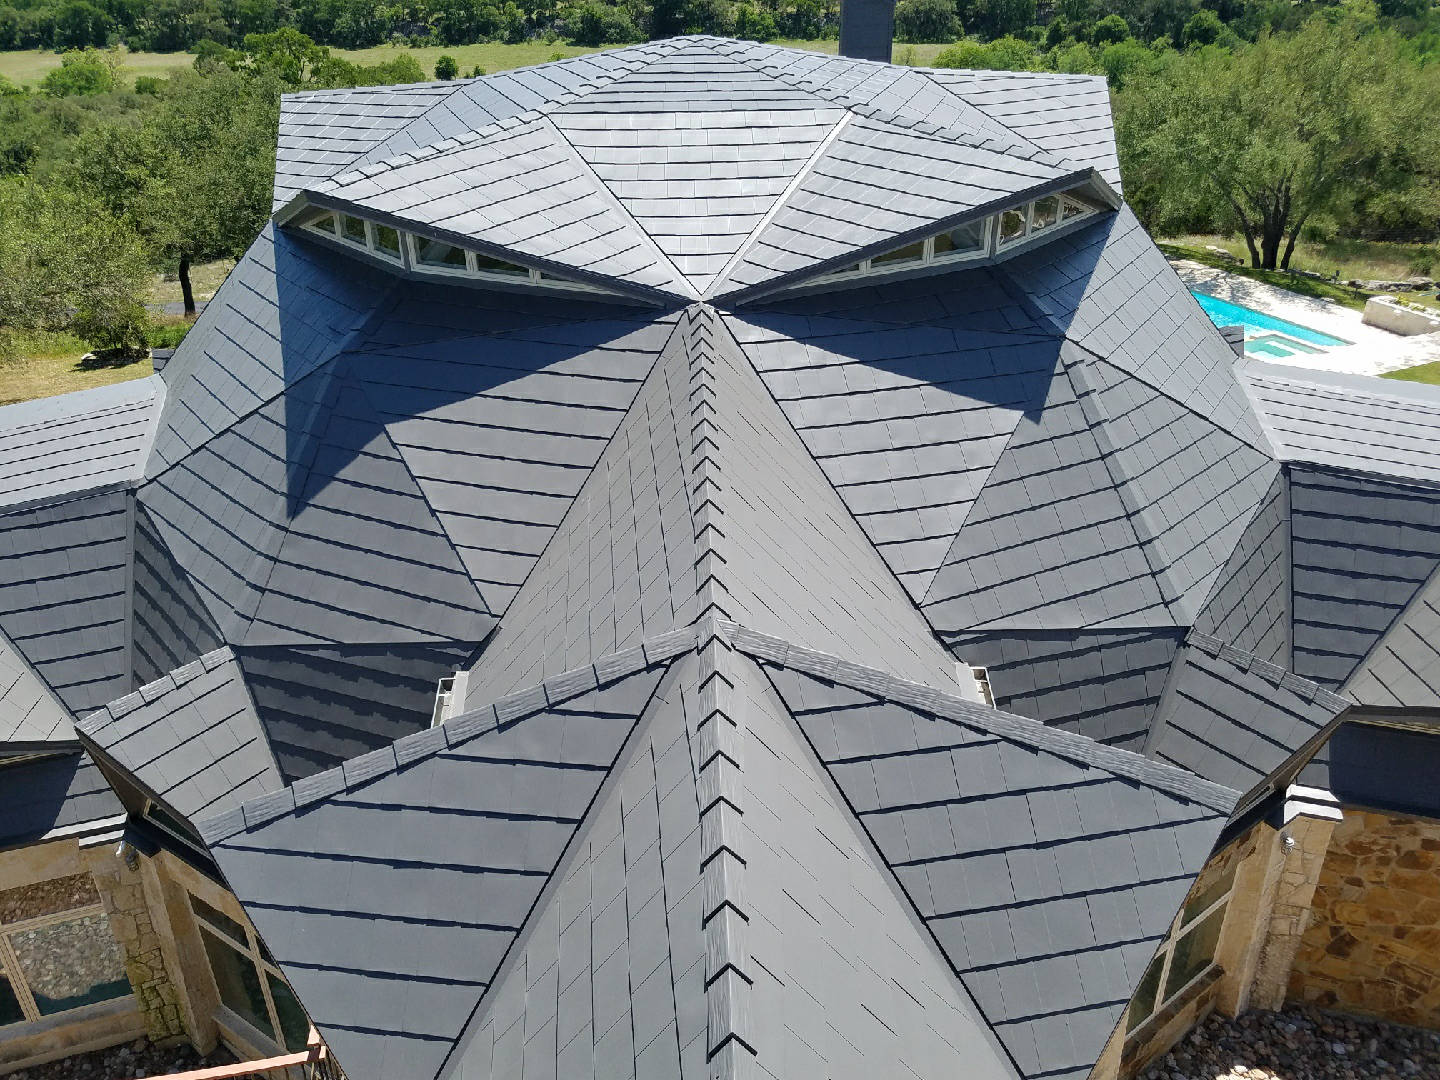 metal roofing on geodesic domes